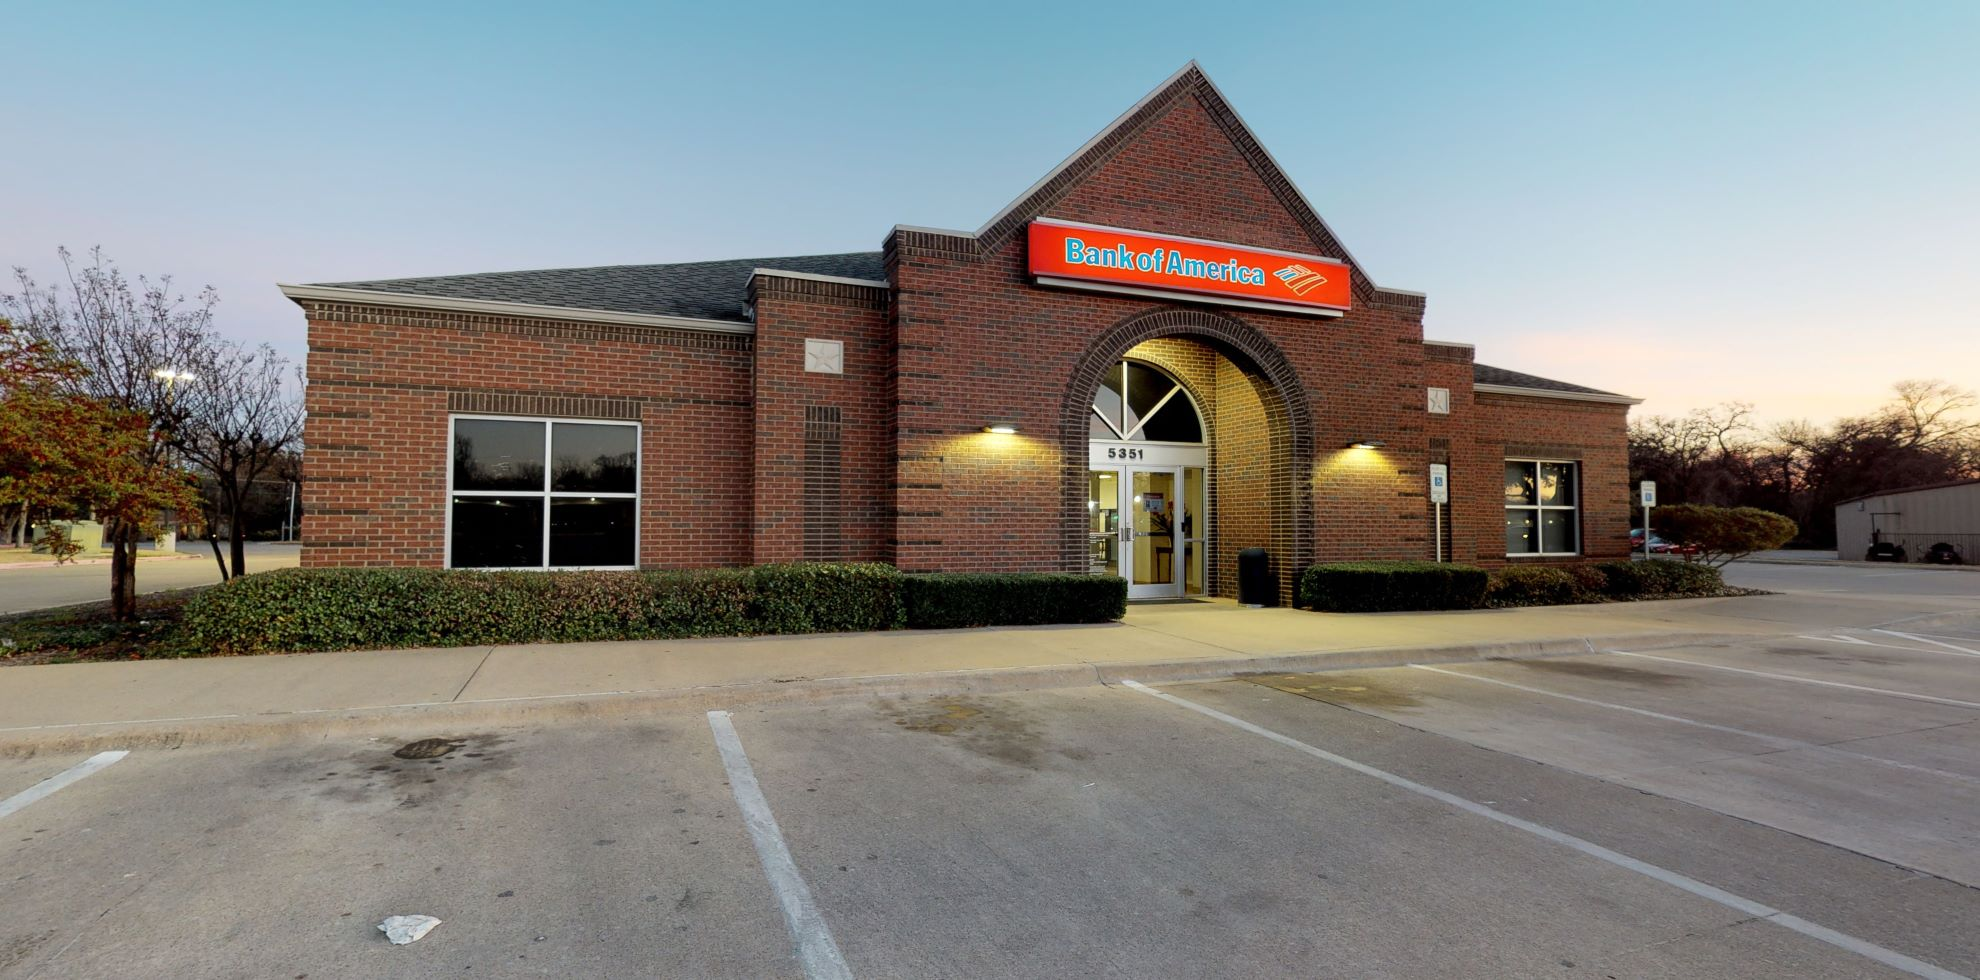 Bank of America financial center with drive-thru ATM | 5351 River Oaks Blvd, Fort Worth, TX 76114